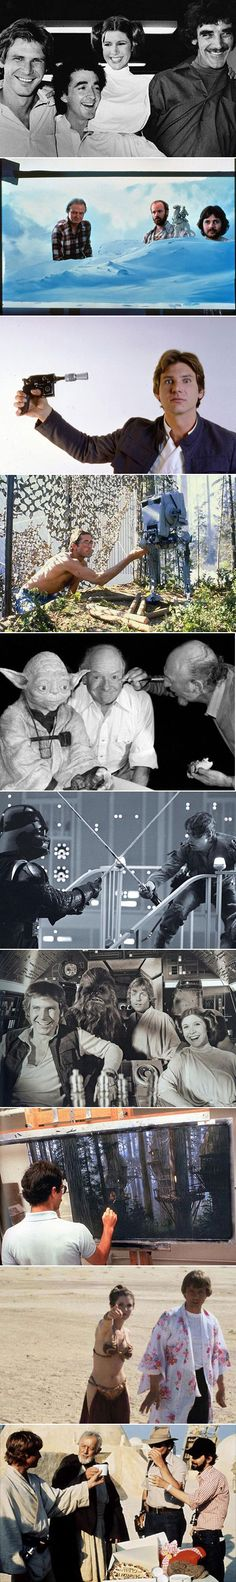 Behind-the-scenes of Star Wars.